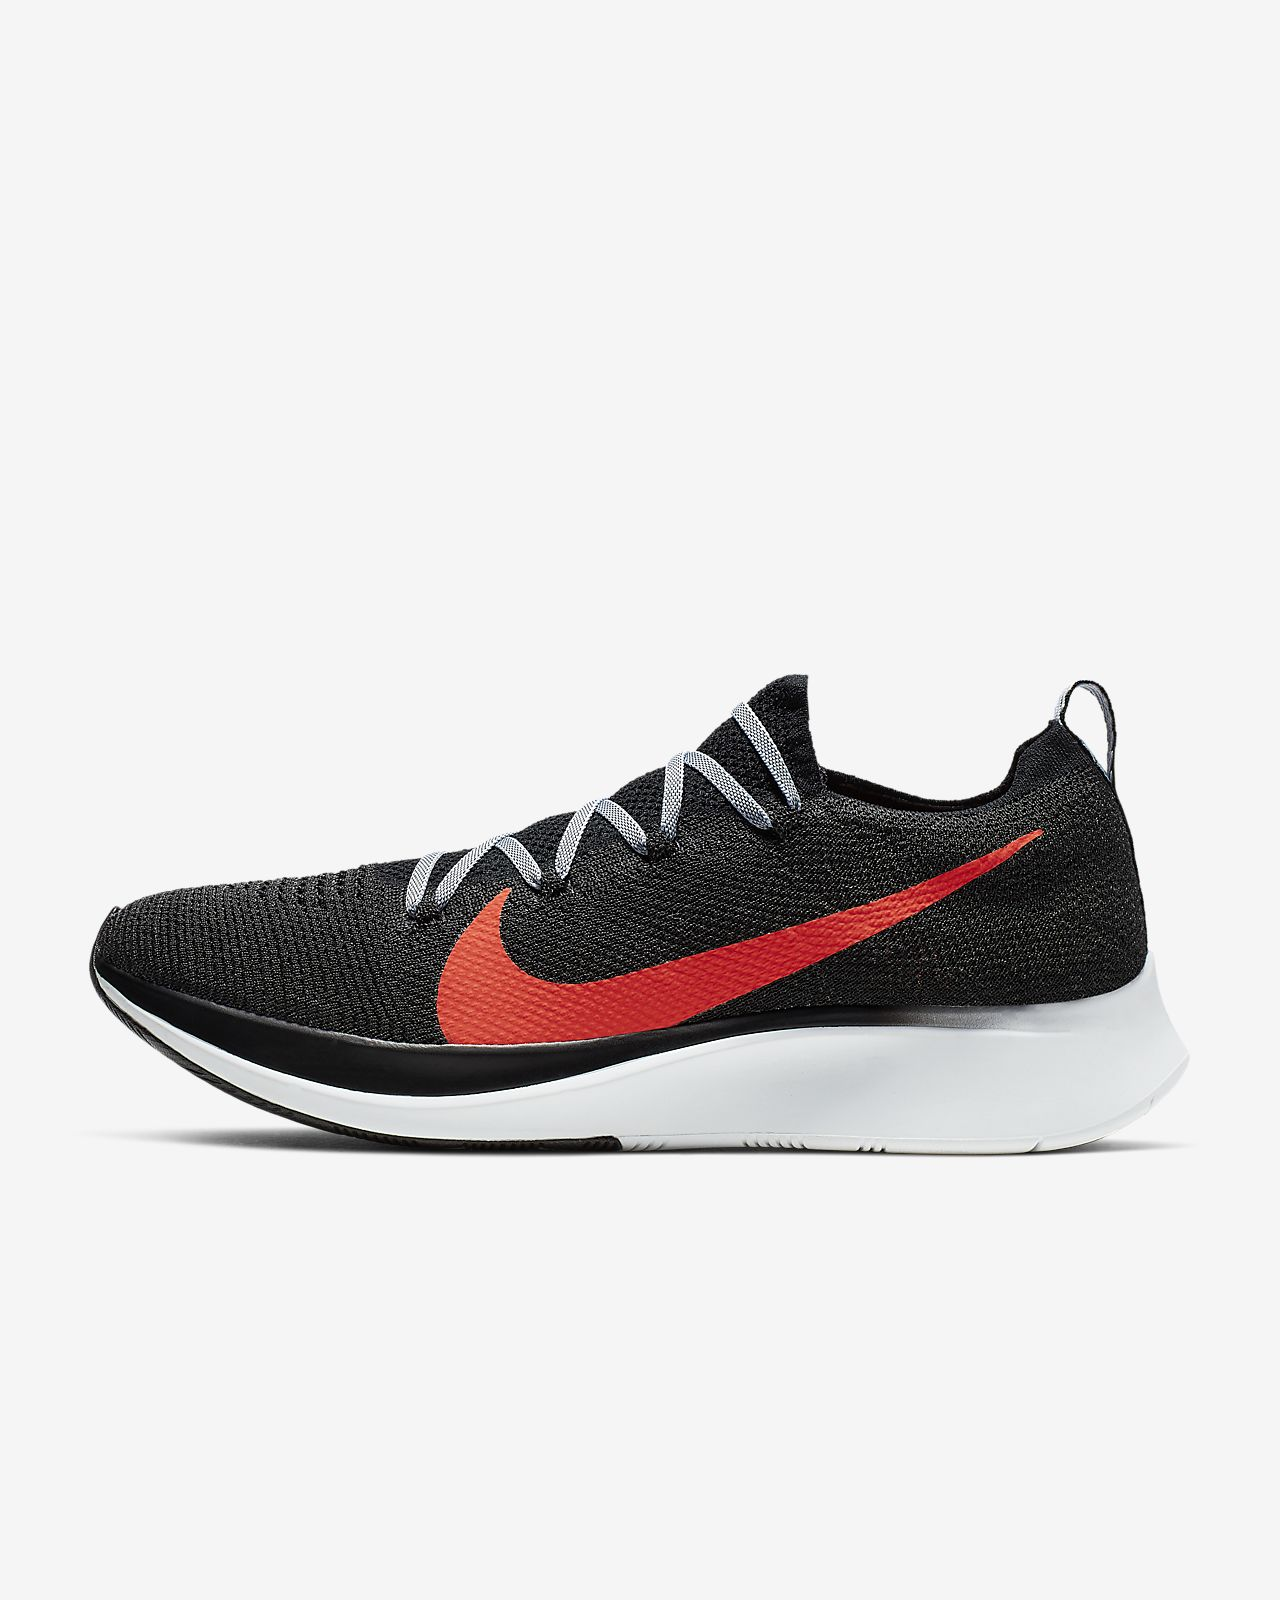 037045757ad00e Nike Zoom Fly Flyknit Men s Running Shoe. Nike.com